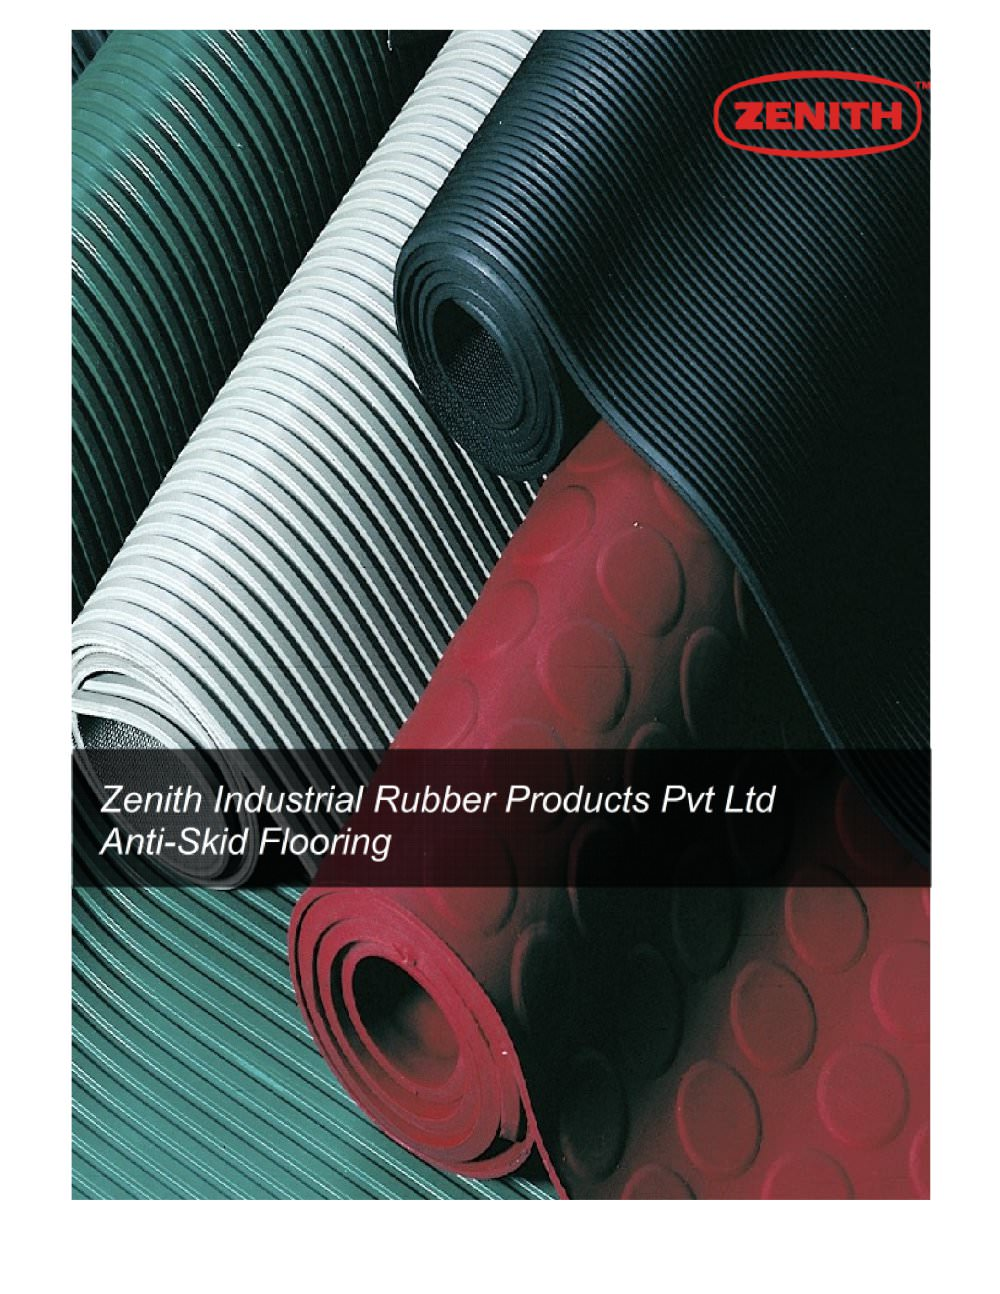 Anti Skid Catalog Zenith Industrial Rubber Products Pvt Ltd - Anti skid flooring material